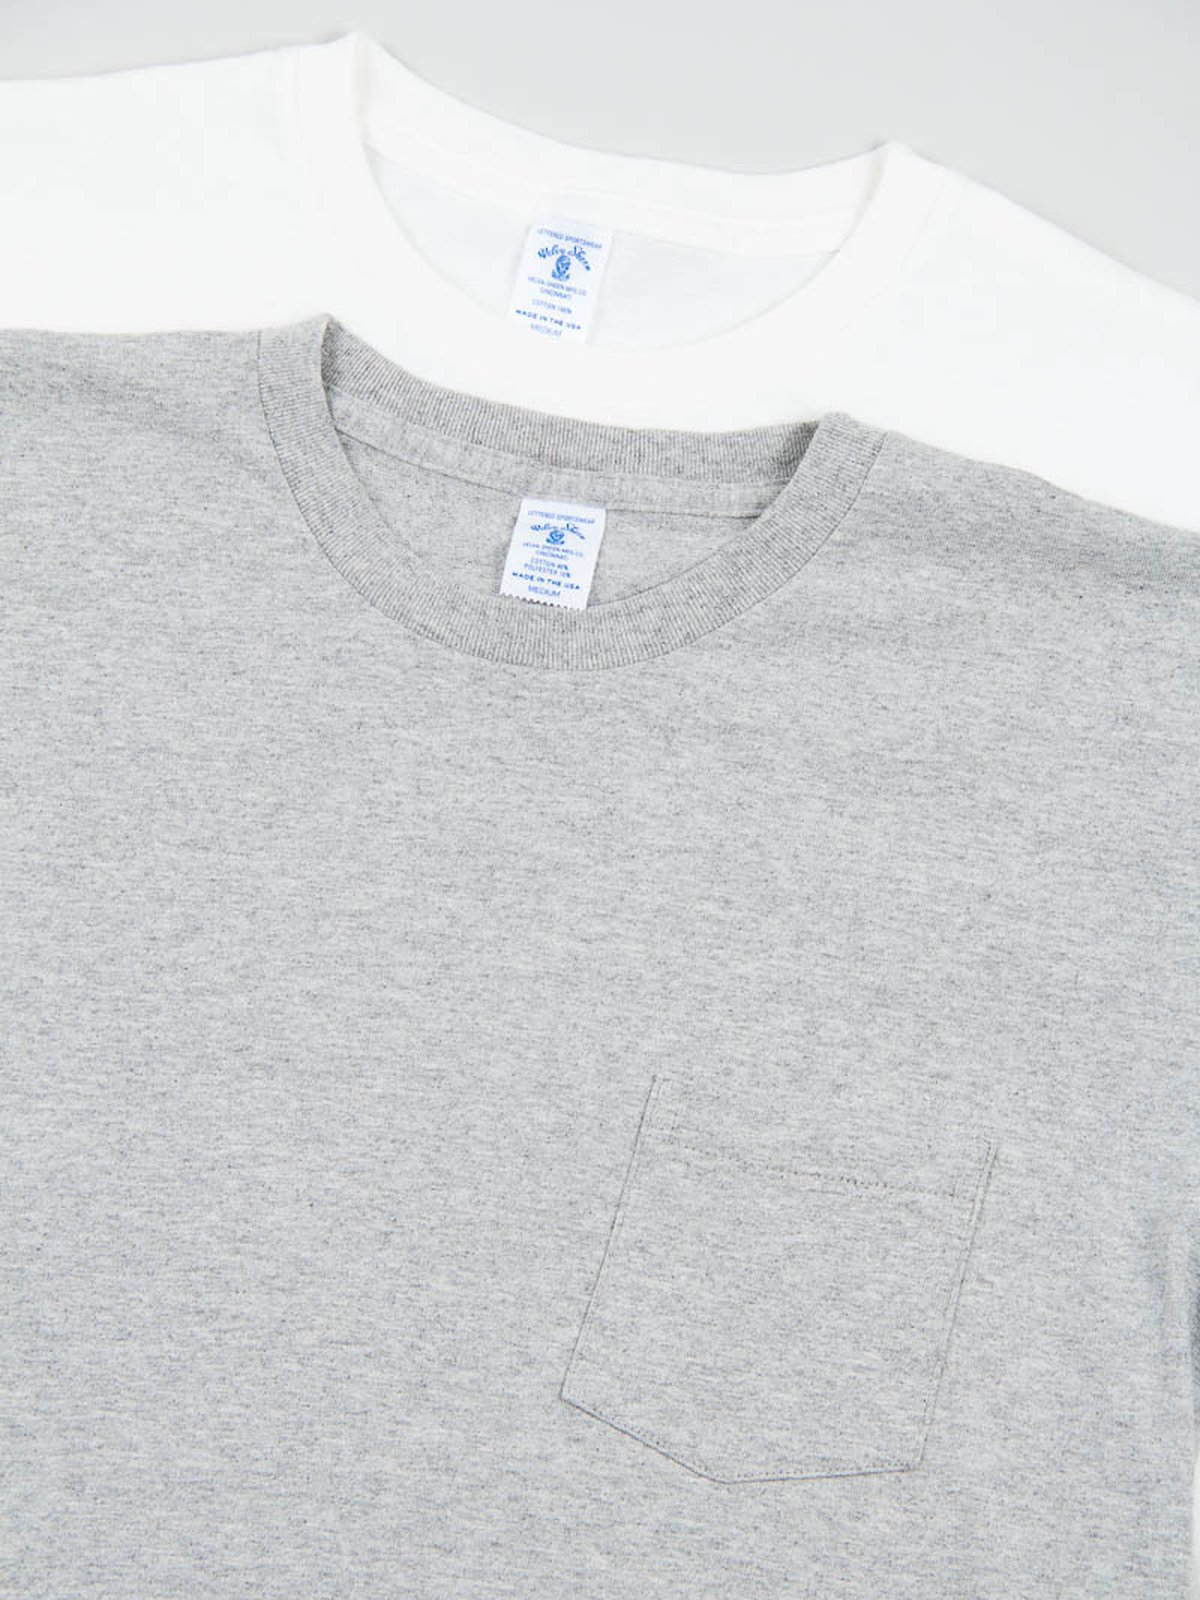 White/Heather Grey 2–Pac Pocket Tees - Image 4